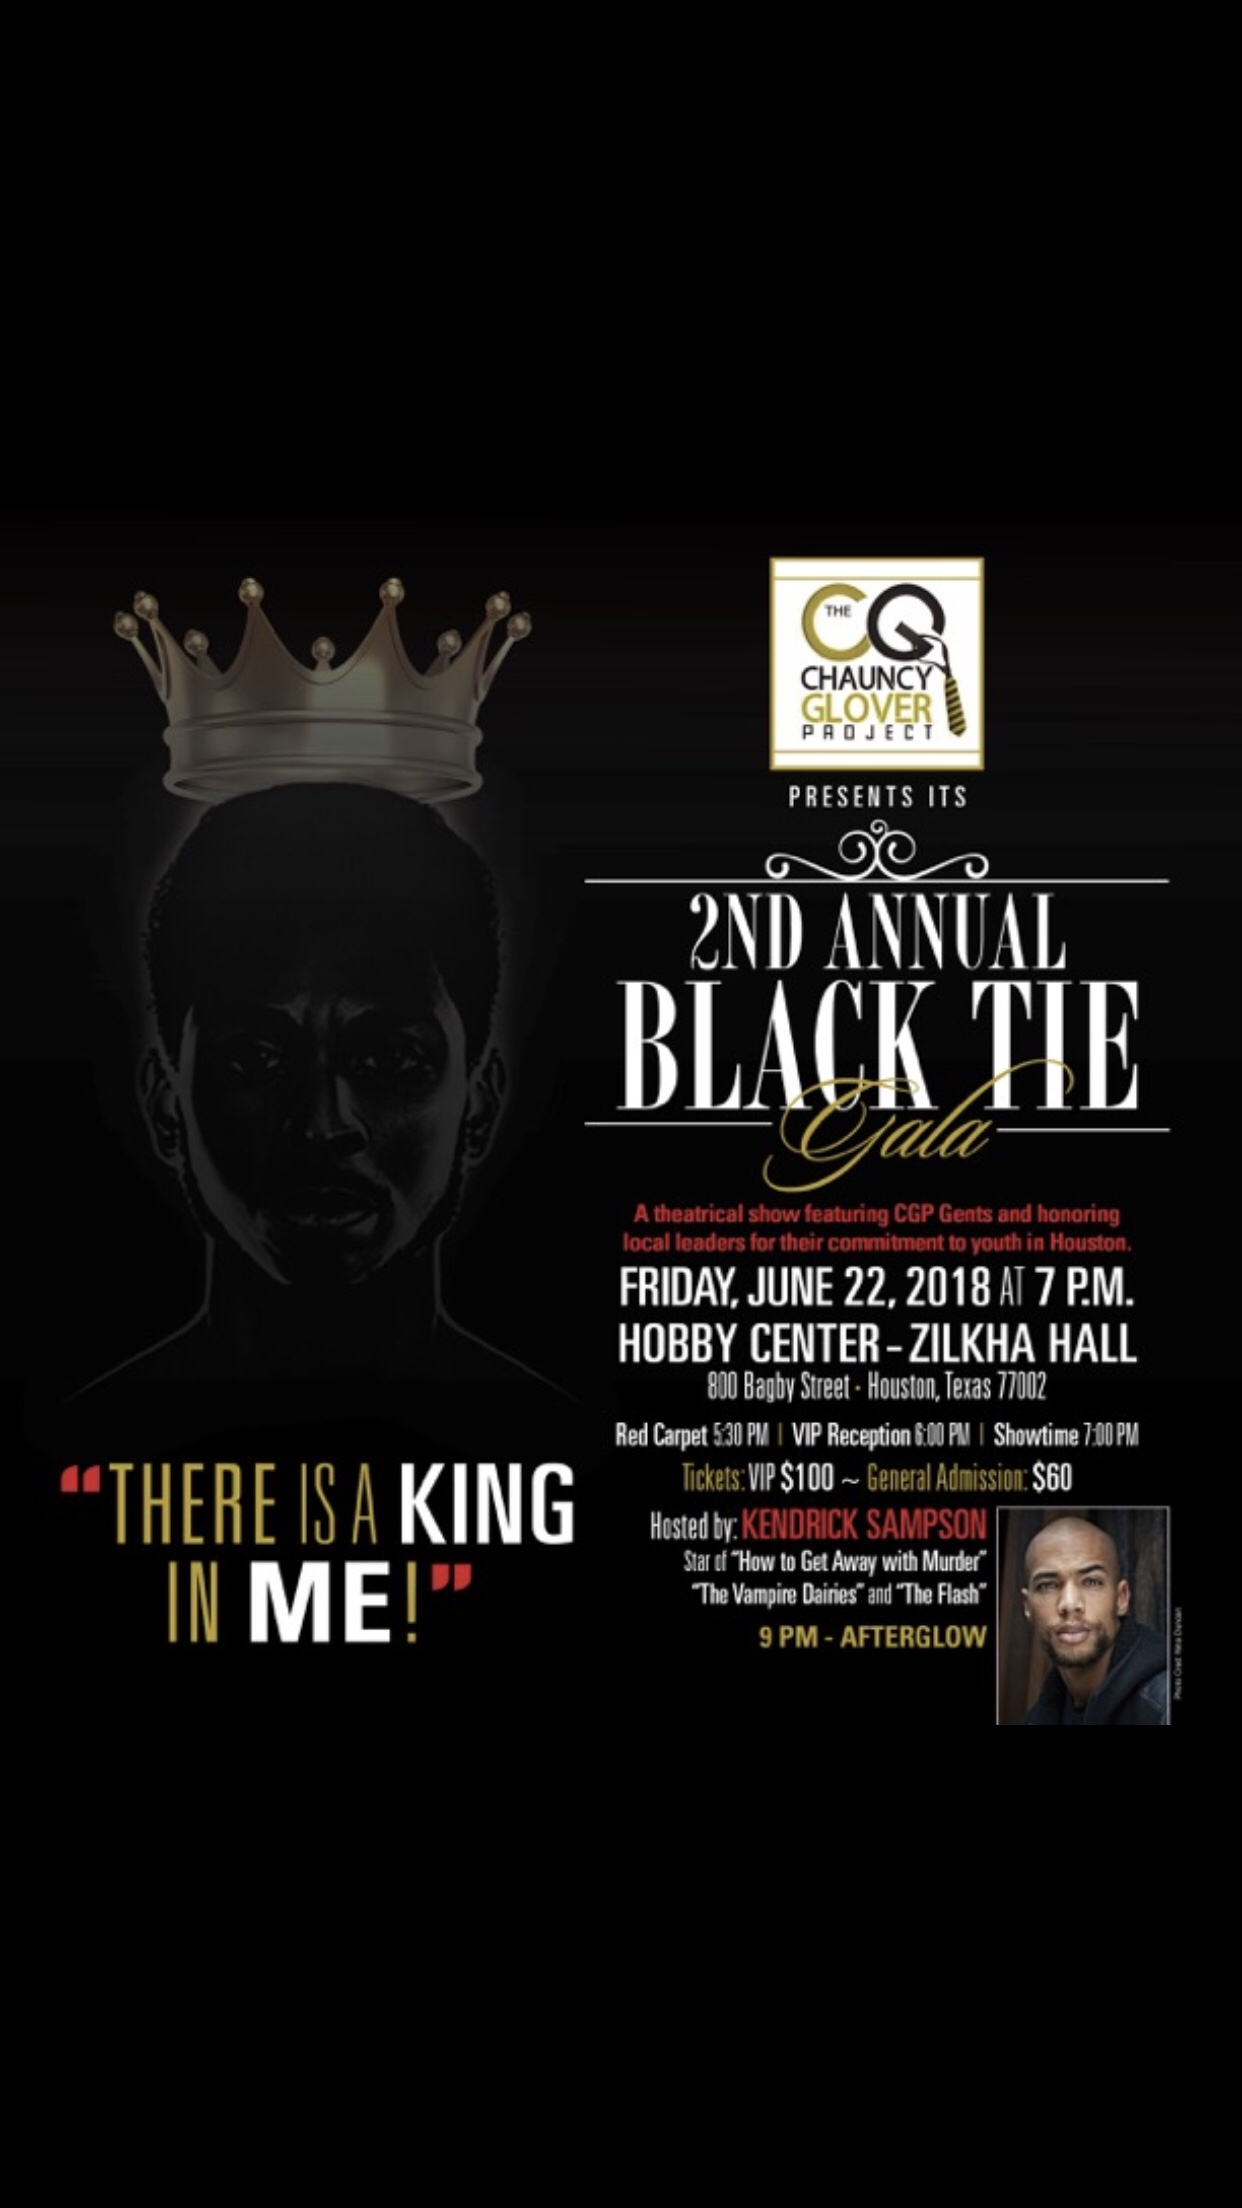 Chauncy Glover Presents 2nd Annual Chauncy Glover Project Gala at Hobby Center June 22, 2018!